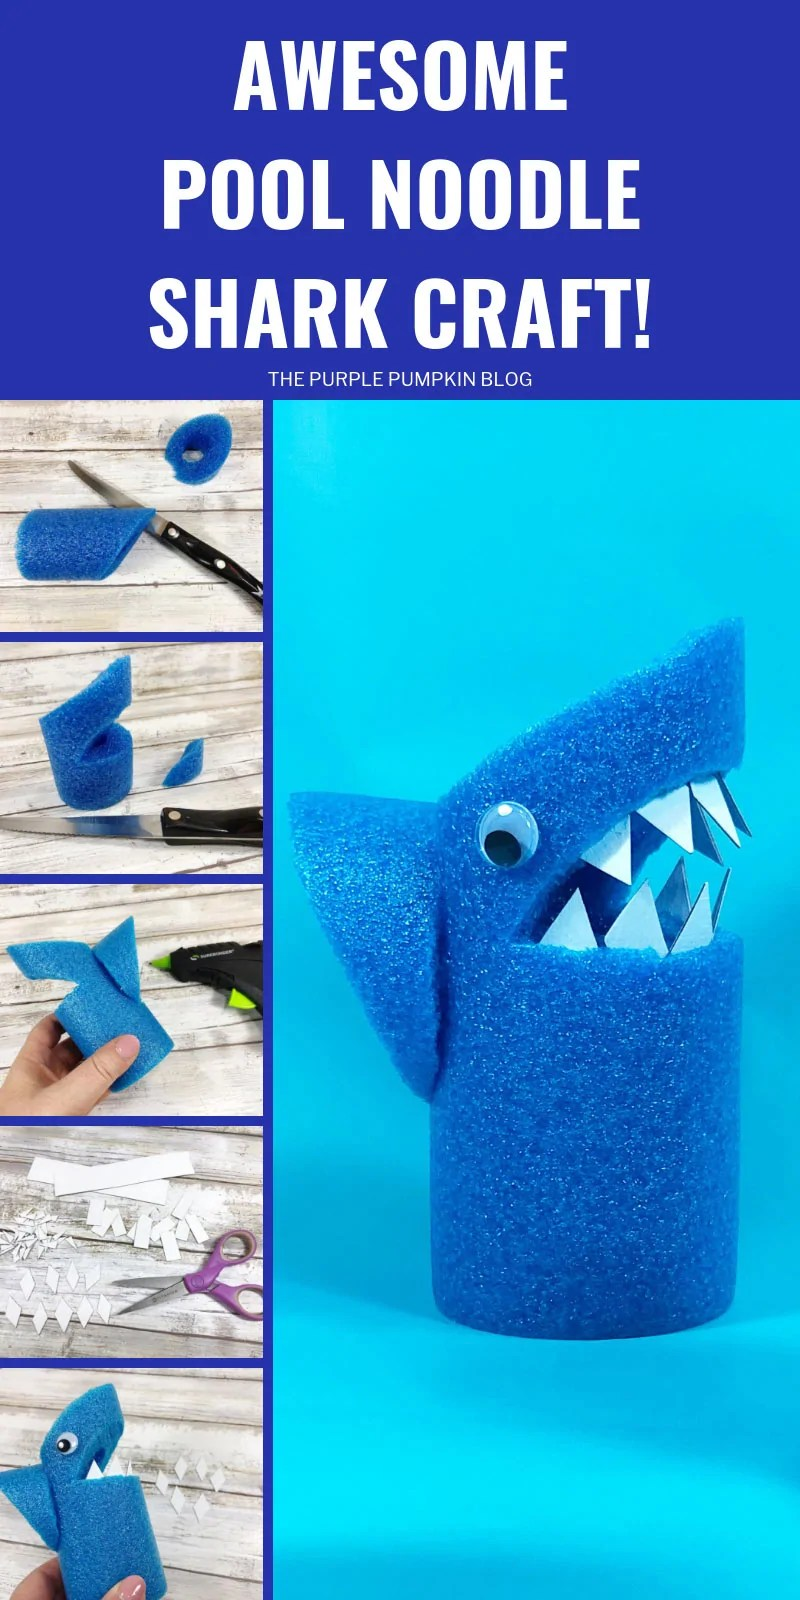 Awesome Pool noodle shark craft